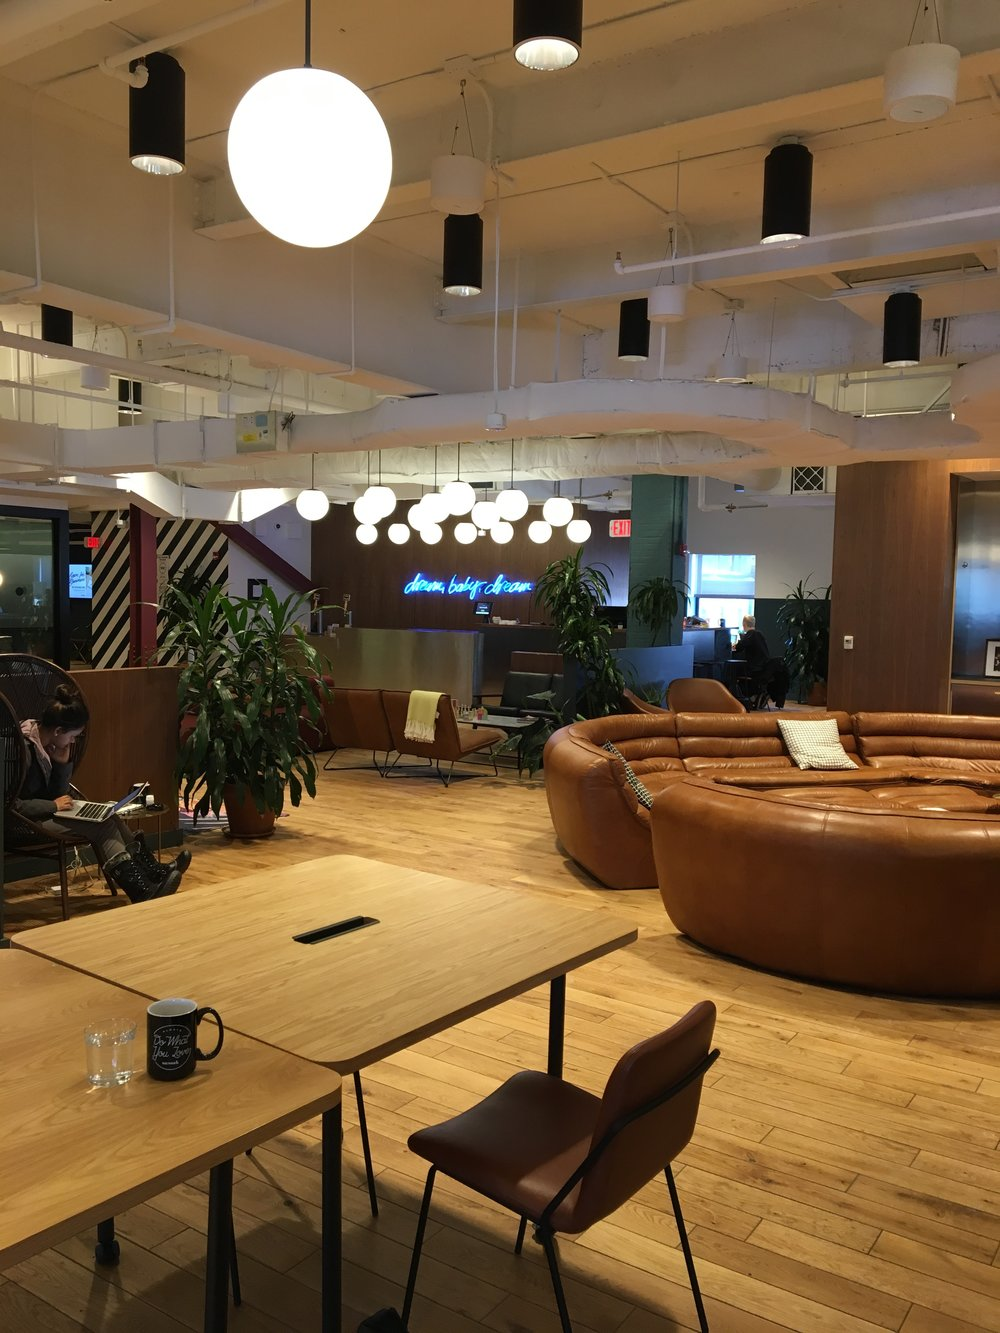 Out of the dining room and into WeWork...